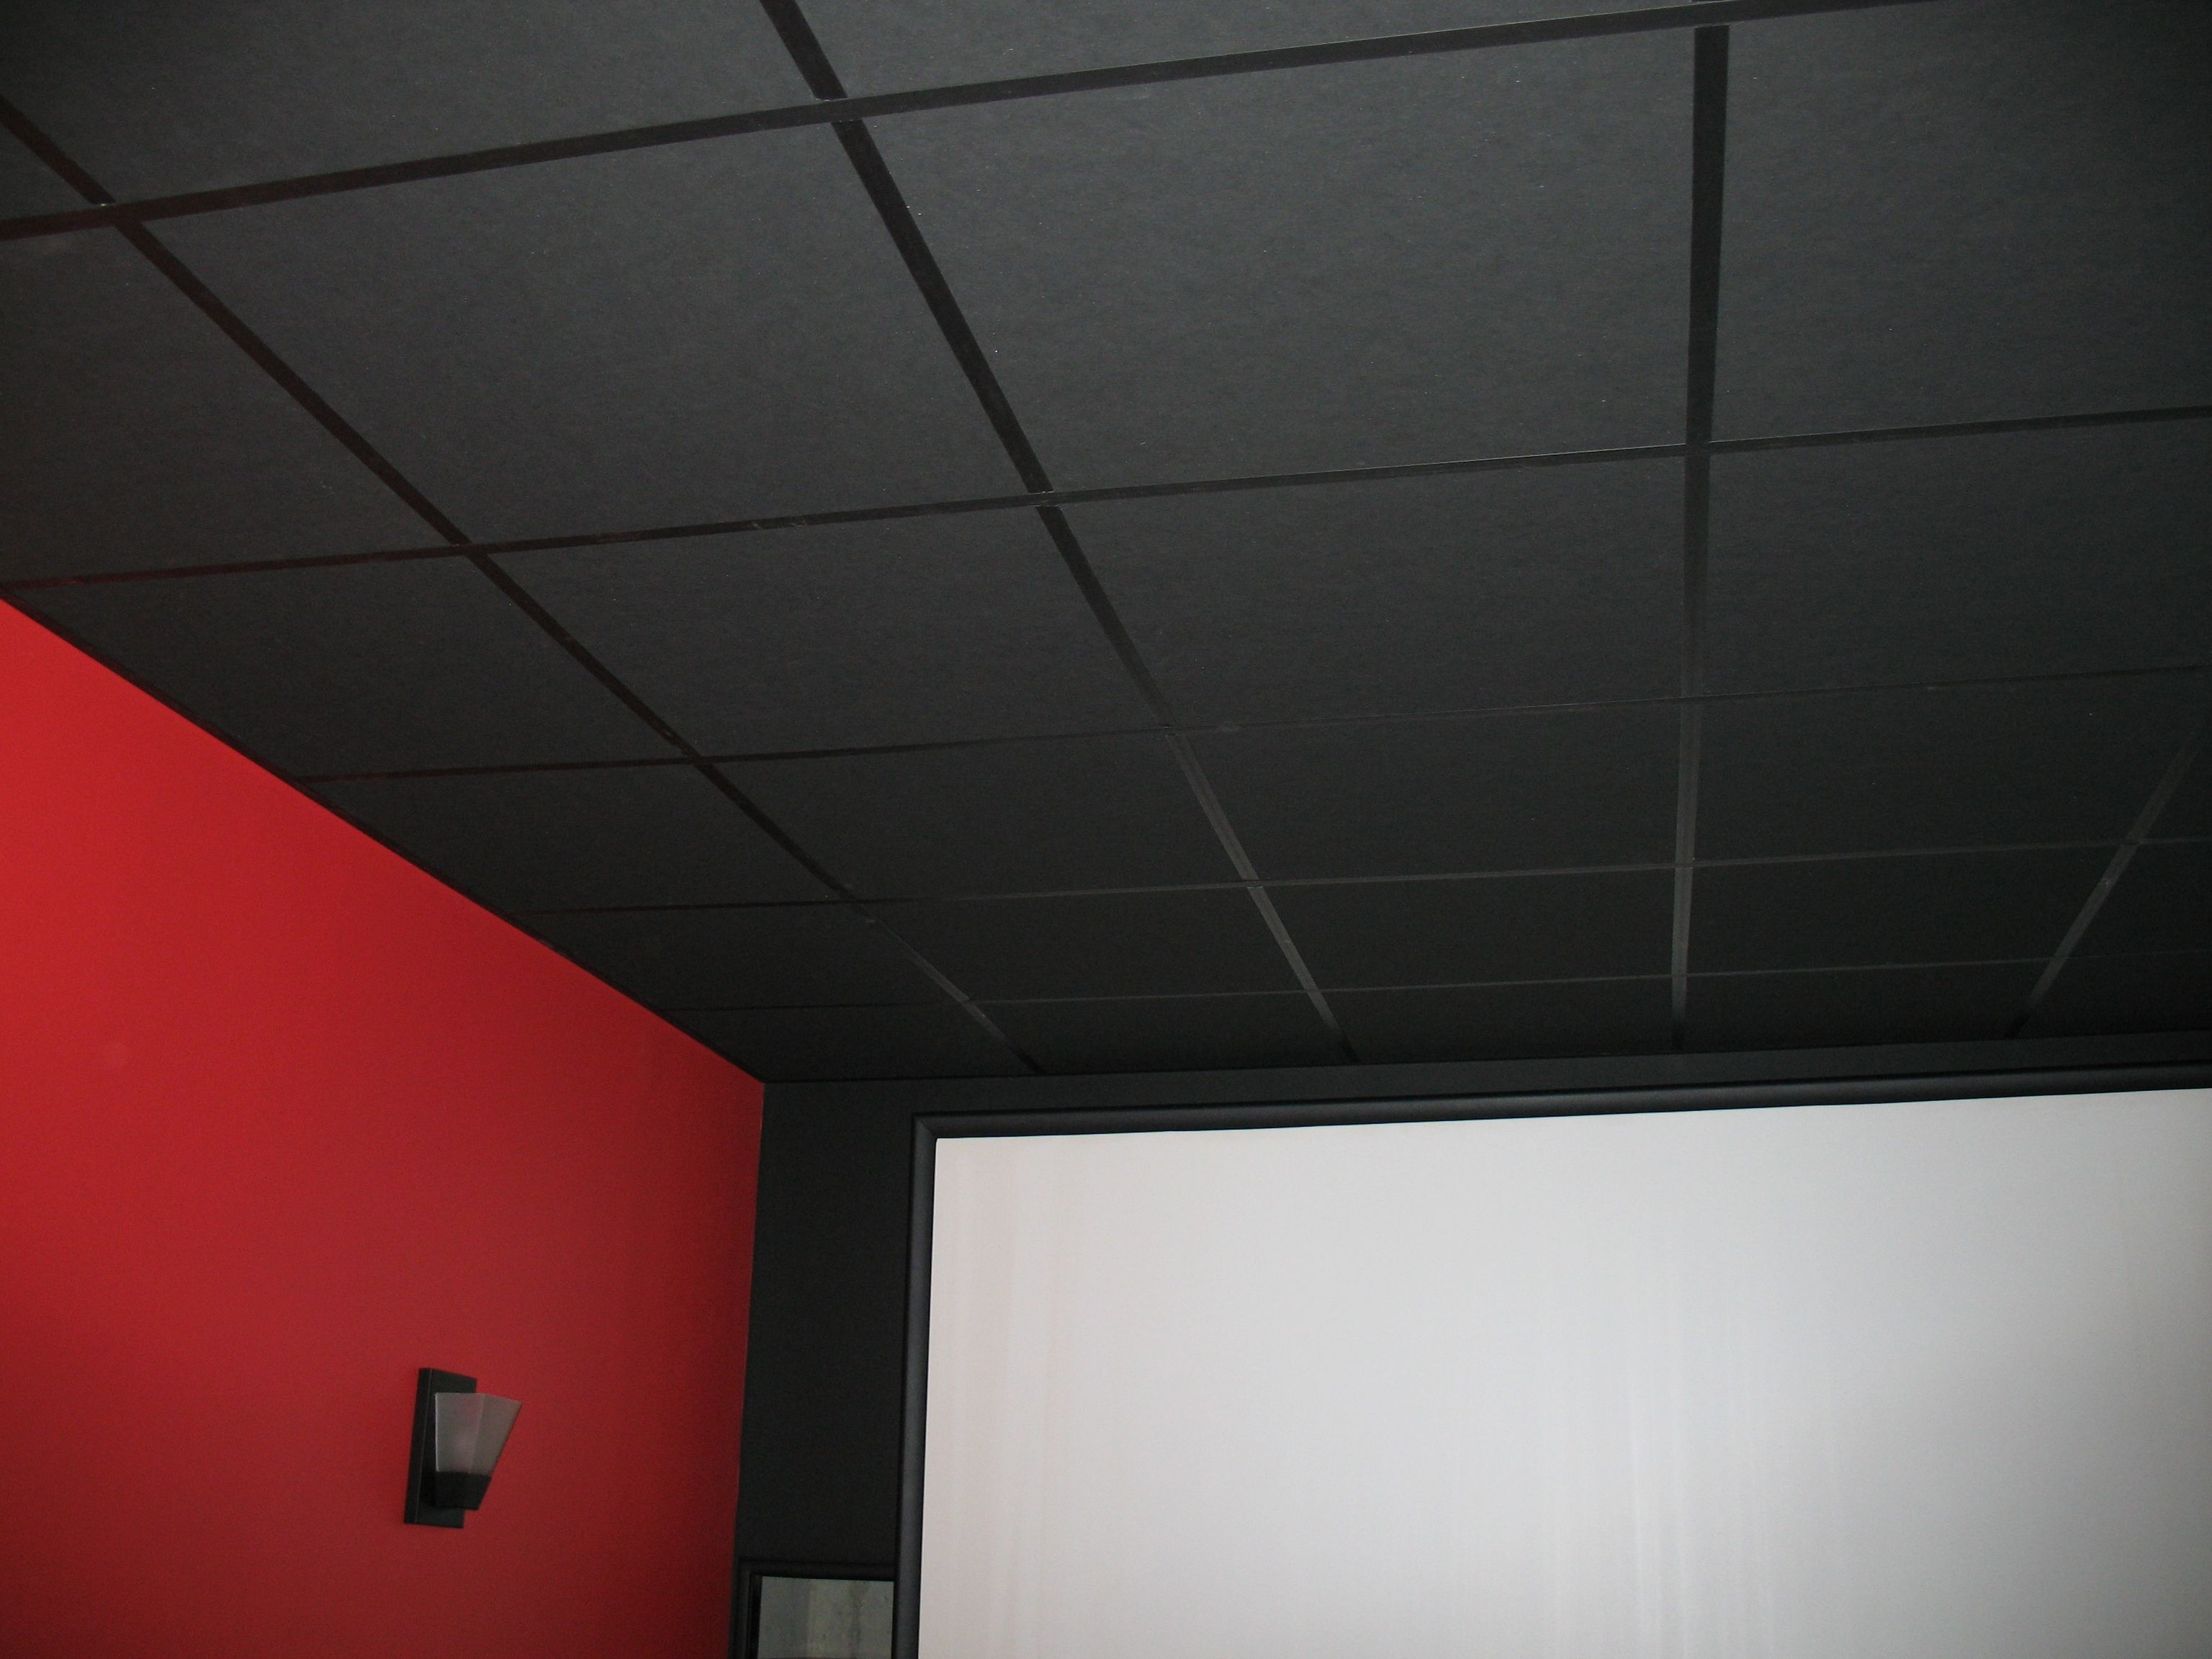 Soundproof Suspended Ceiling Tiles In 2019 Dropped Ceiling